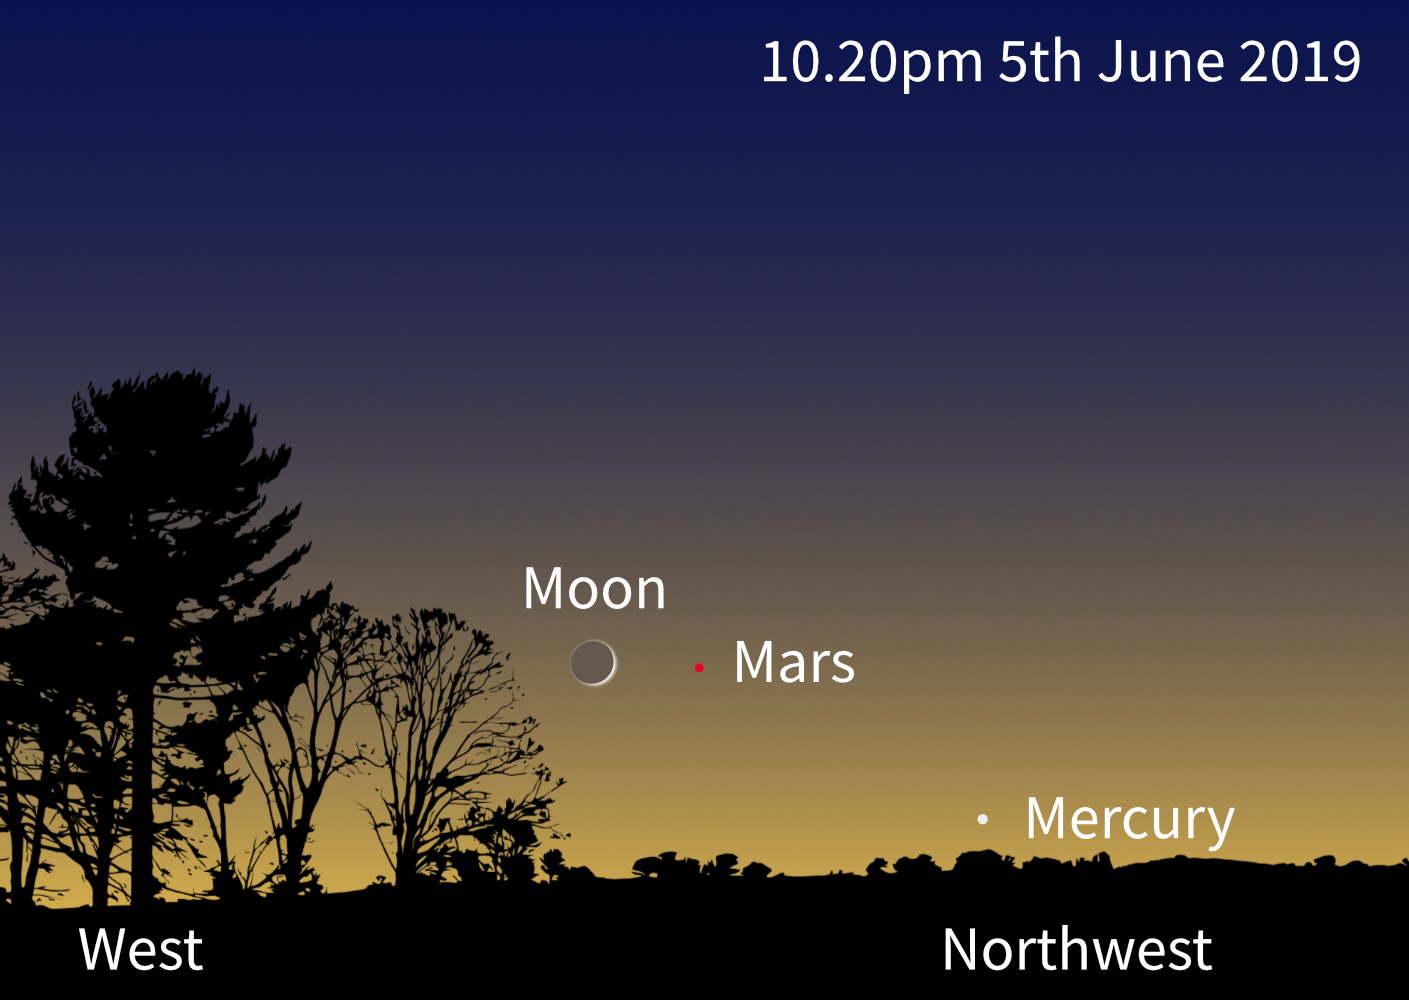 Moon, Mars and Mercury conjunction